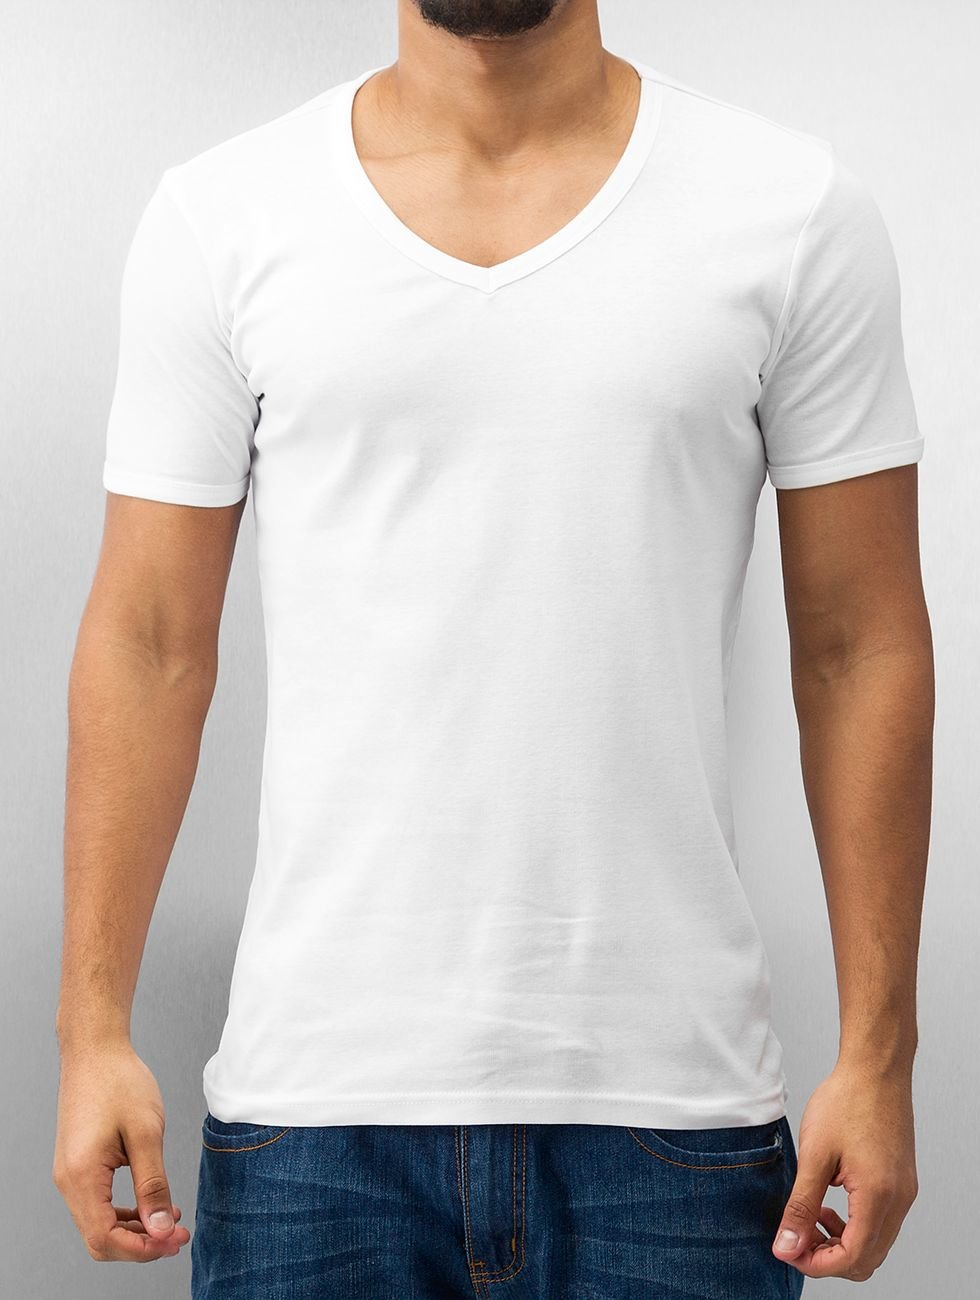 Urban Classics T-Shirt Slim 1by1 V-Neck weiß